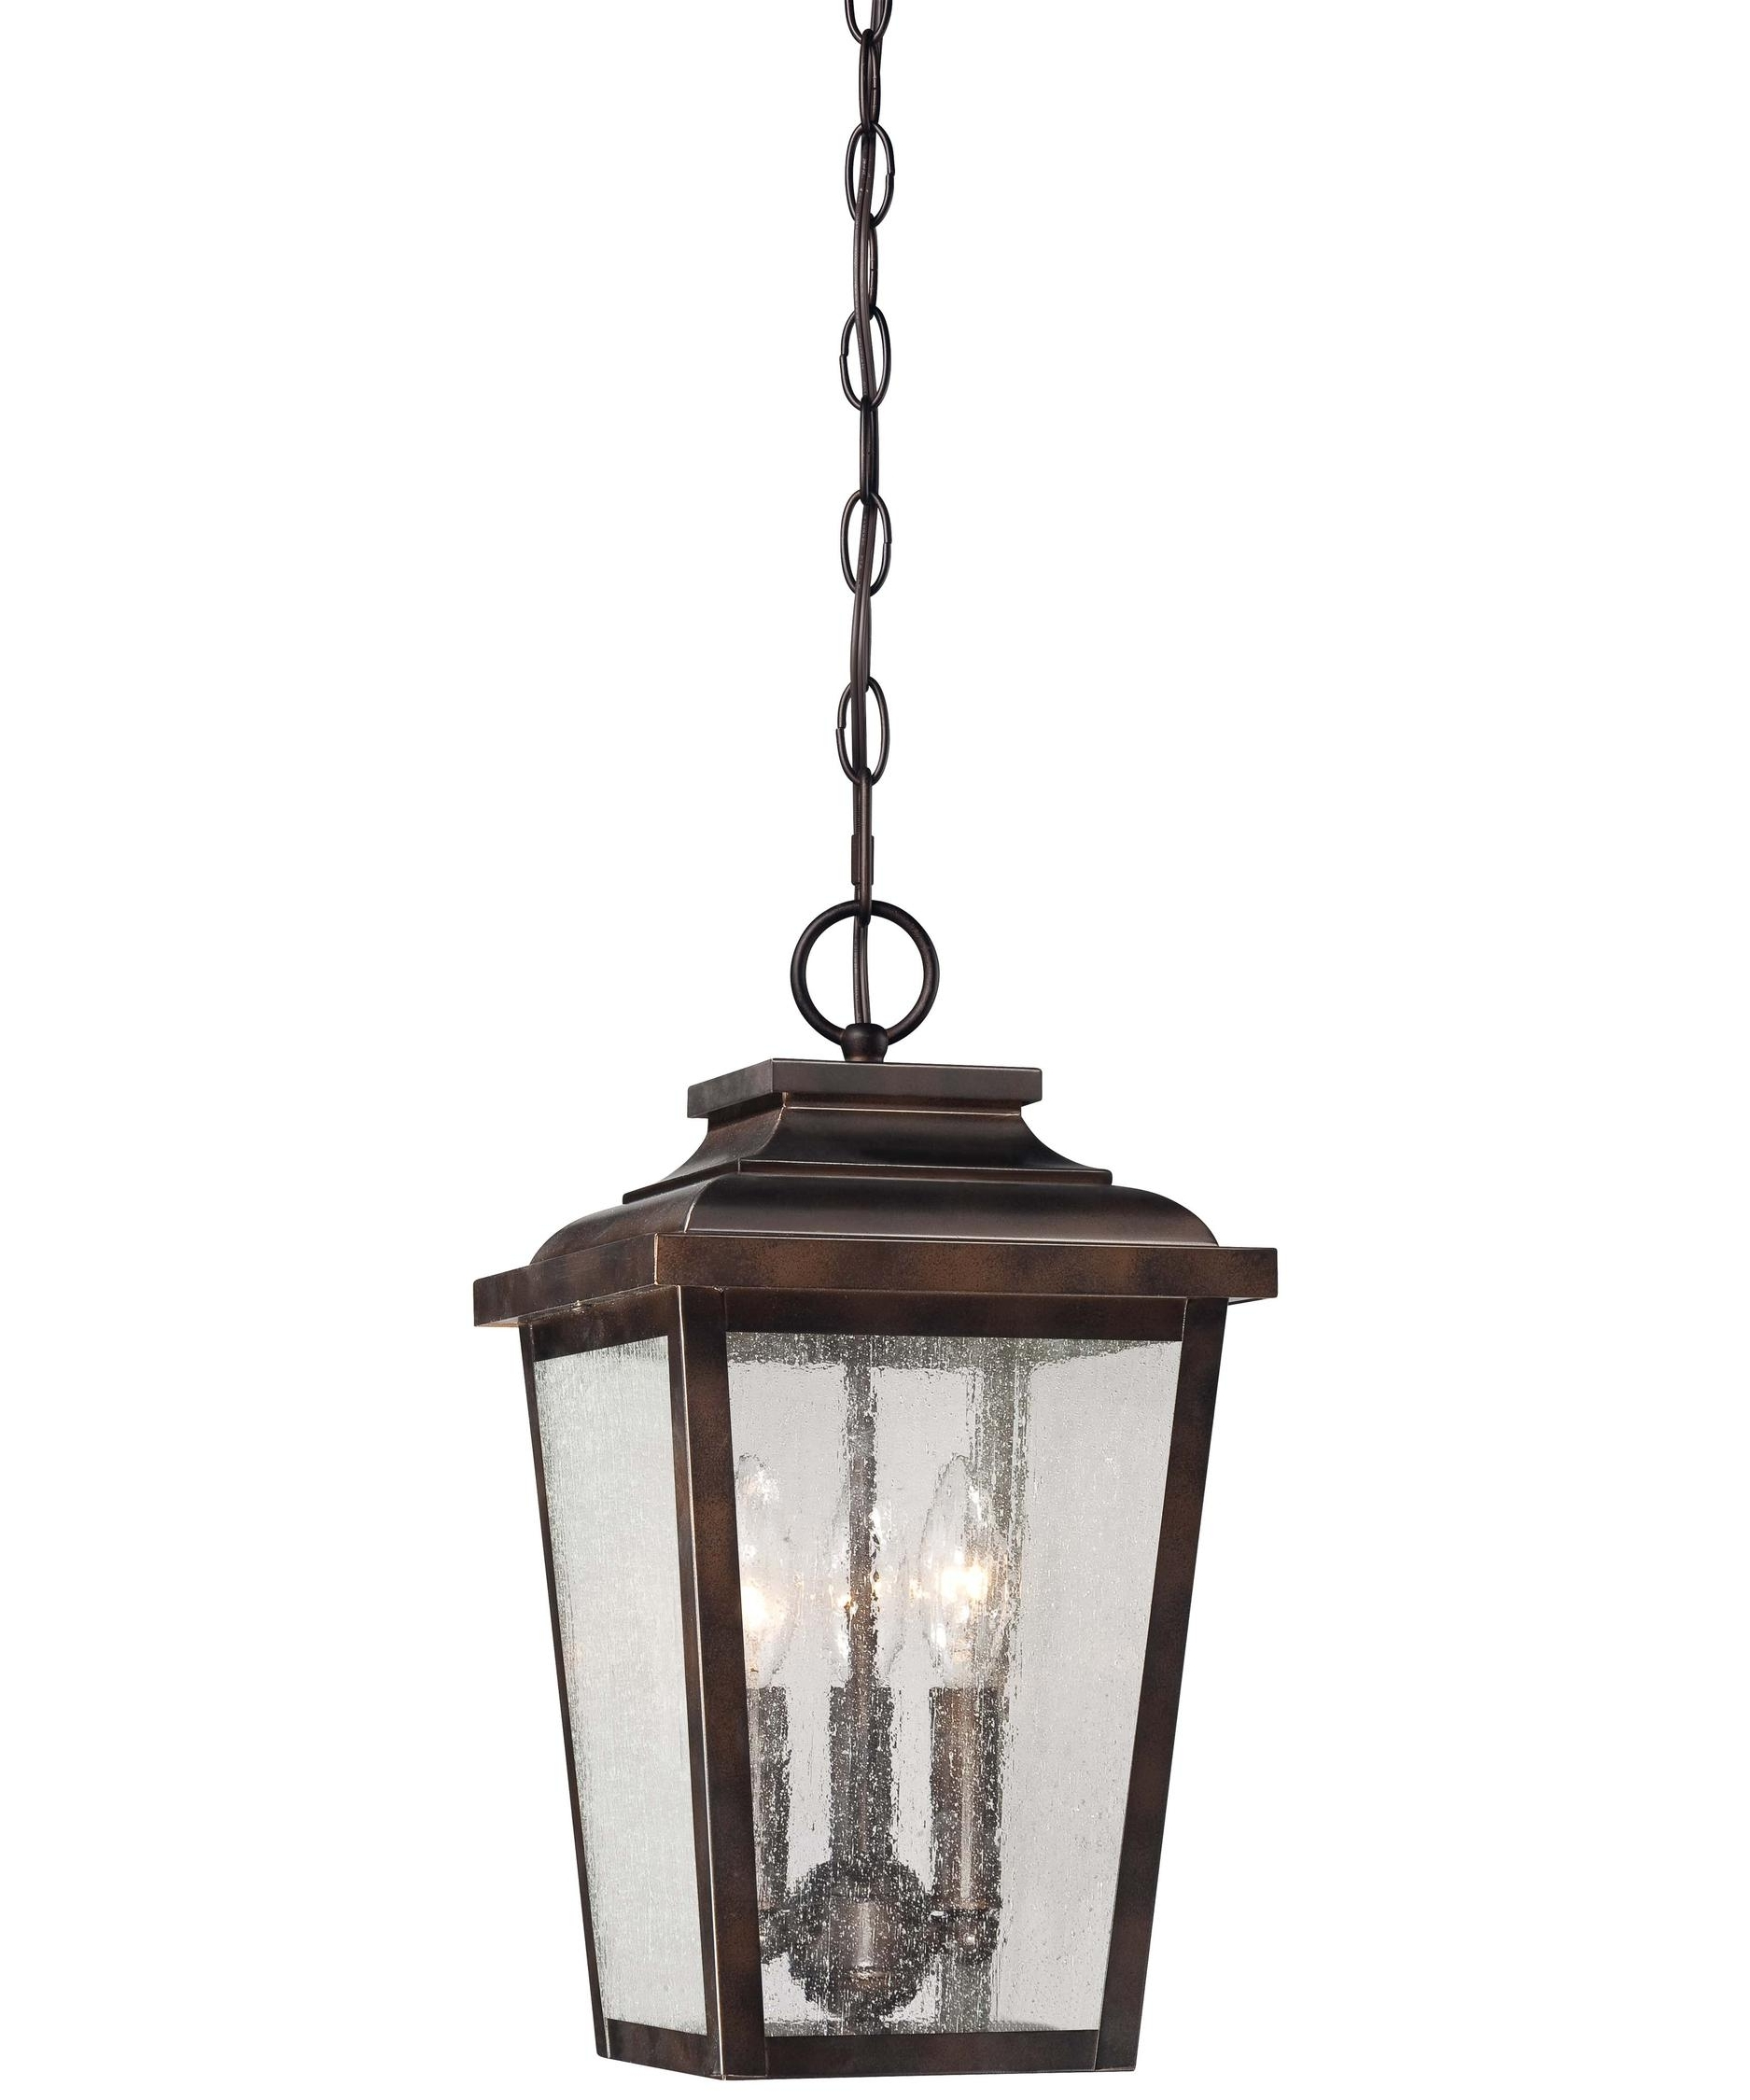 Minka Lavery 72174 Irvington Manor 9 Inch Wide 3 Light Outdoor With Regard To 2018 Outdoor Pendant Lanterns (View 4 of 20)